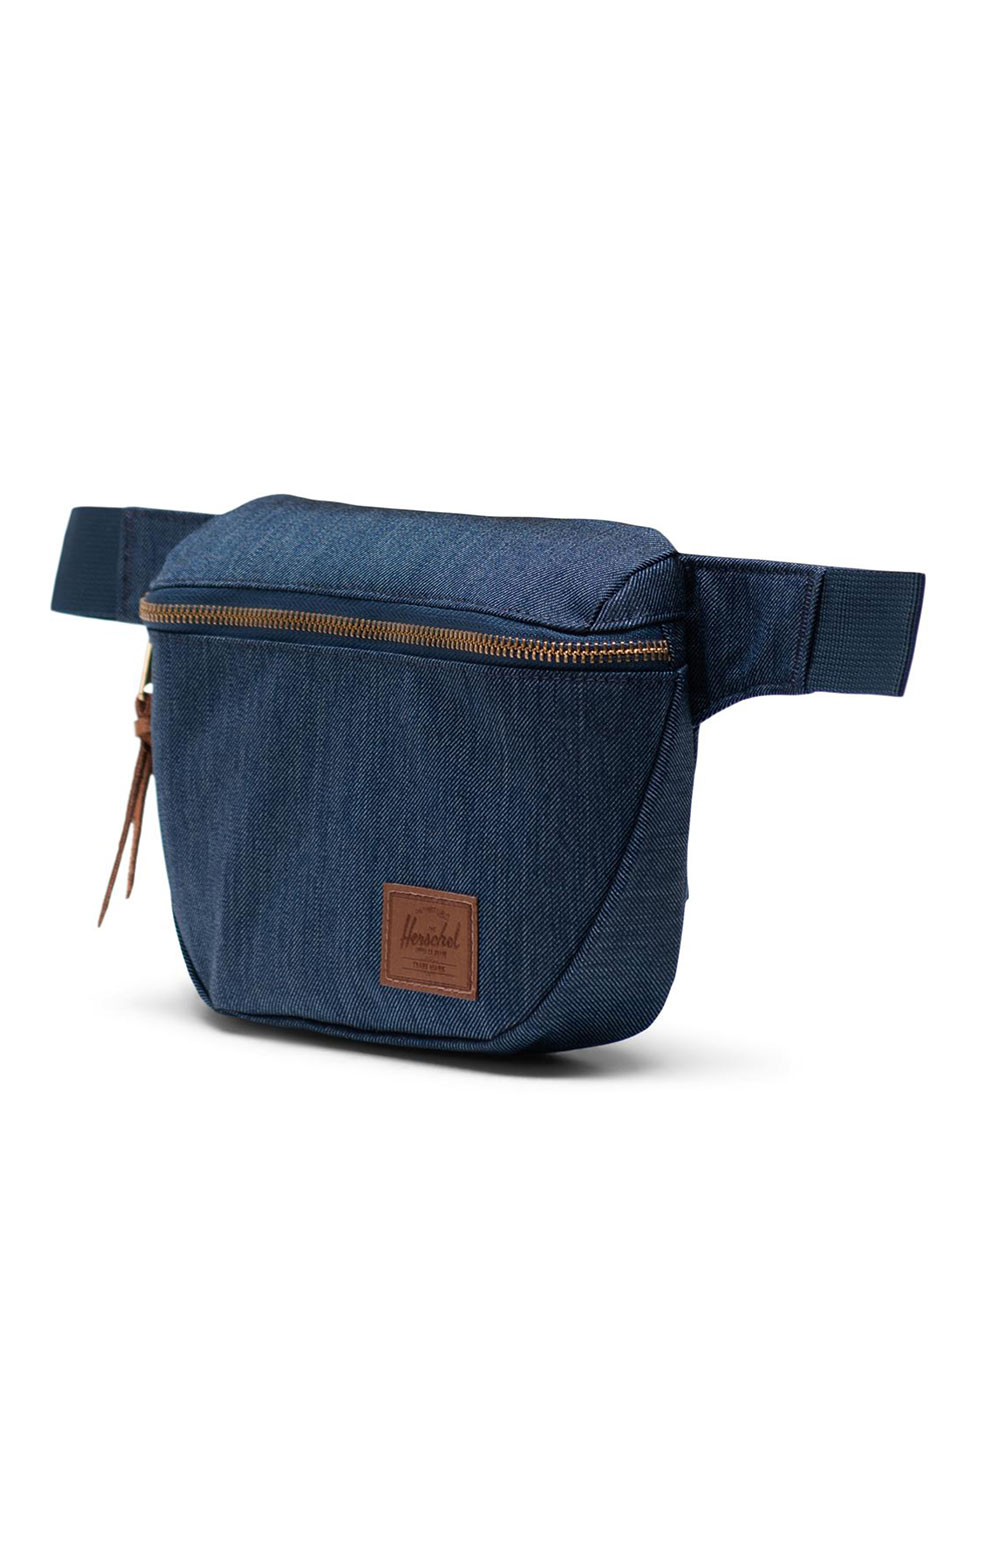 Fifteen Hip Pack - Indigo Denim X  2